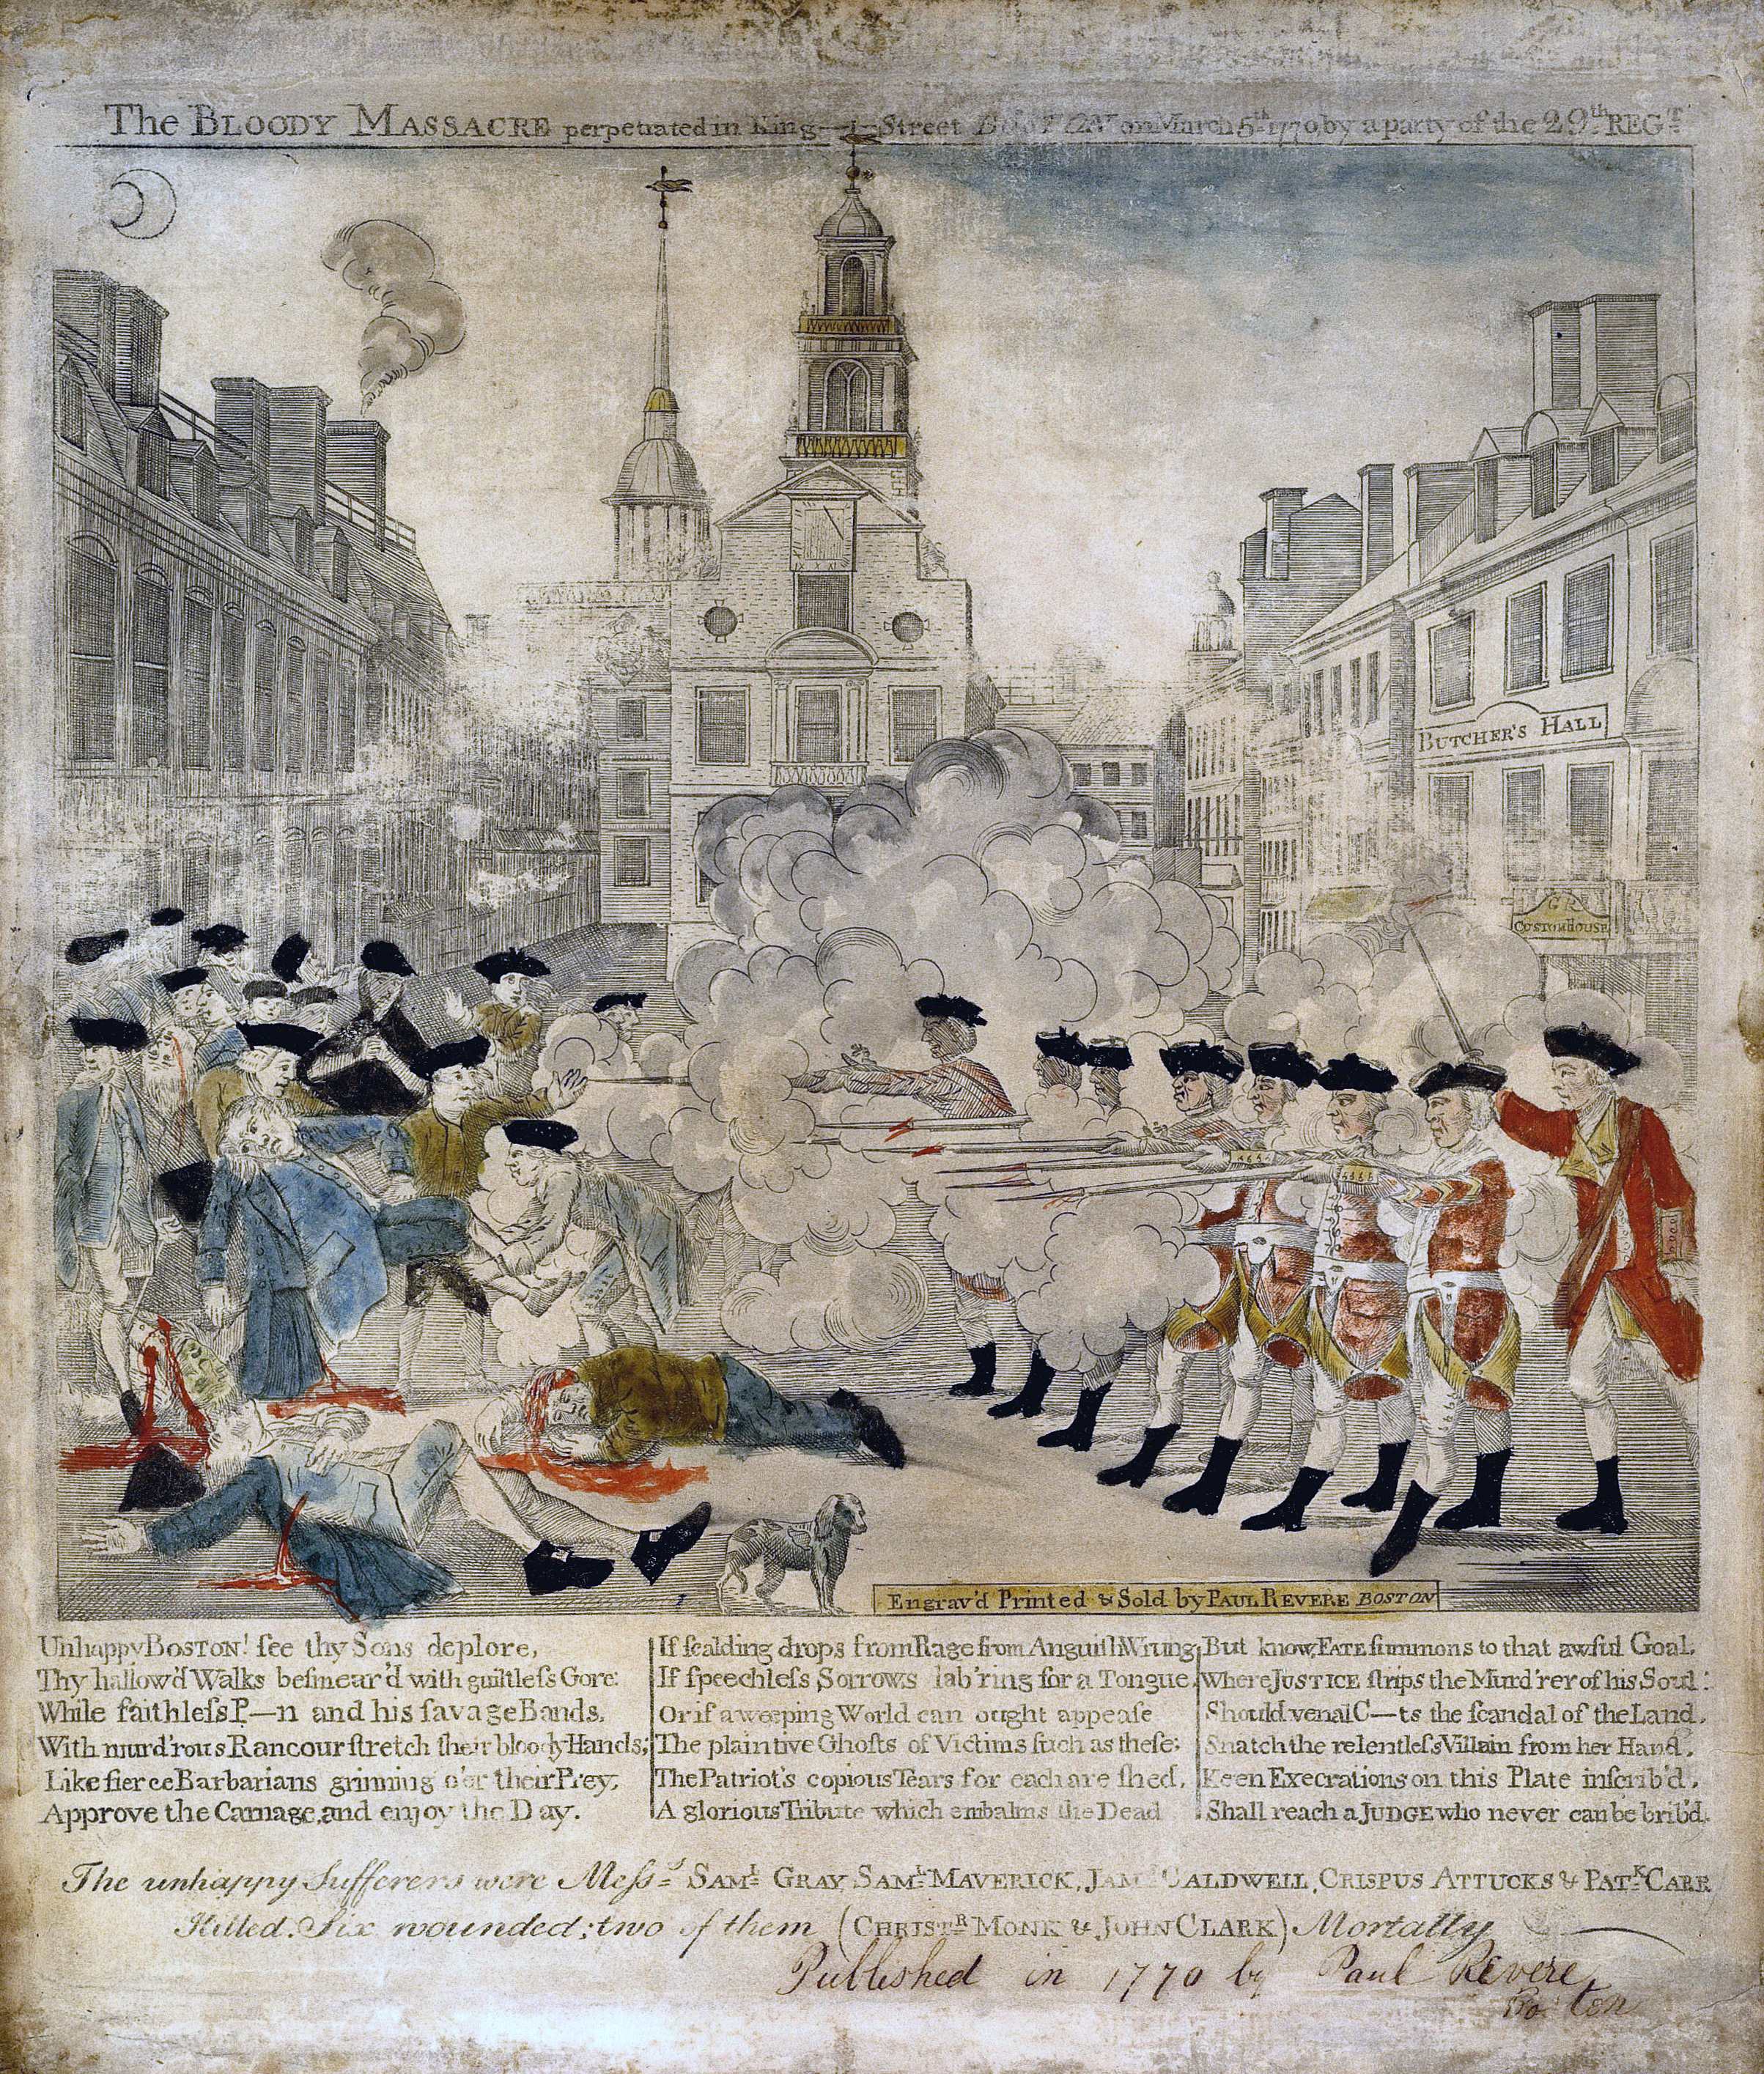 Paul Revere: The Boston Massacre